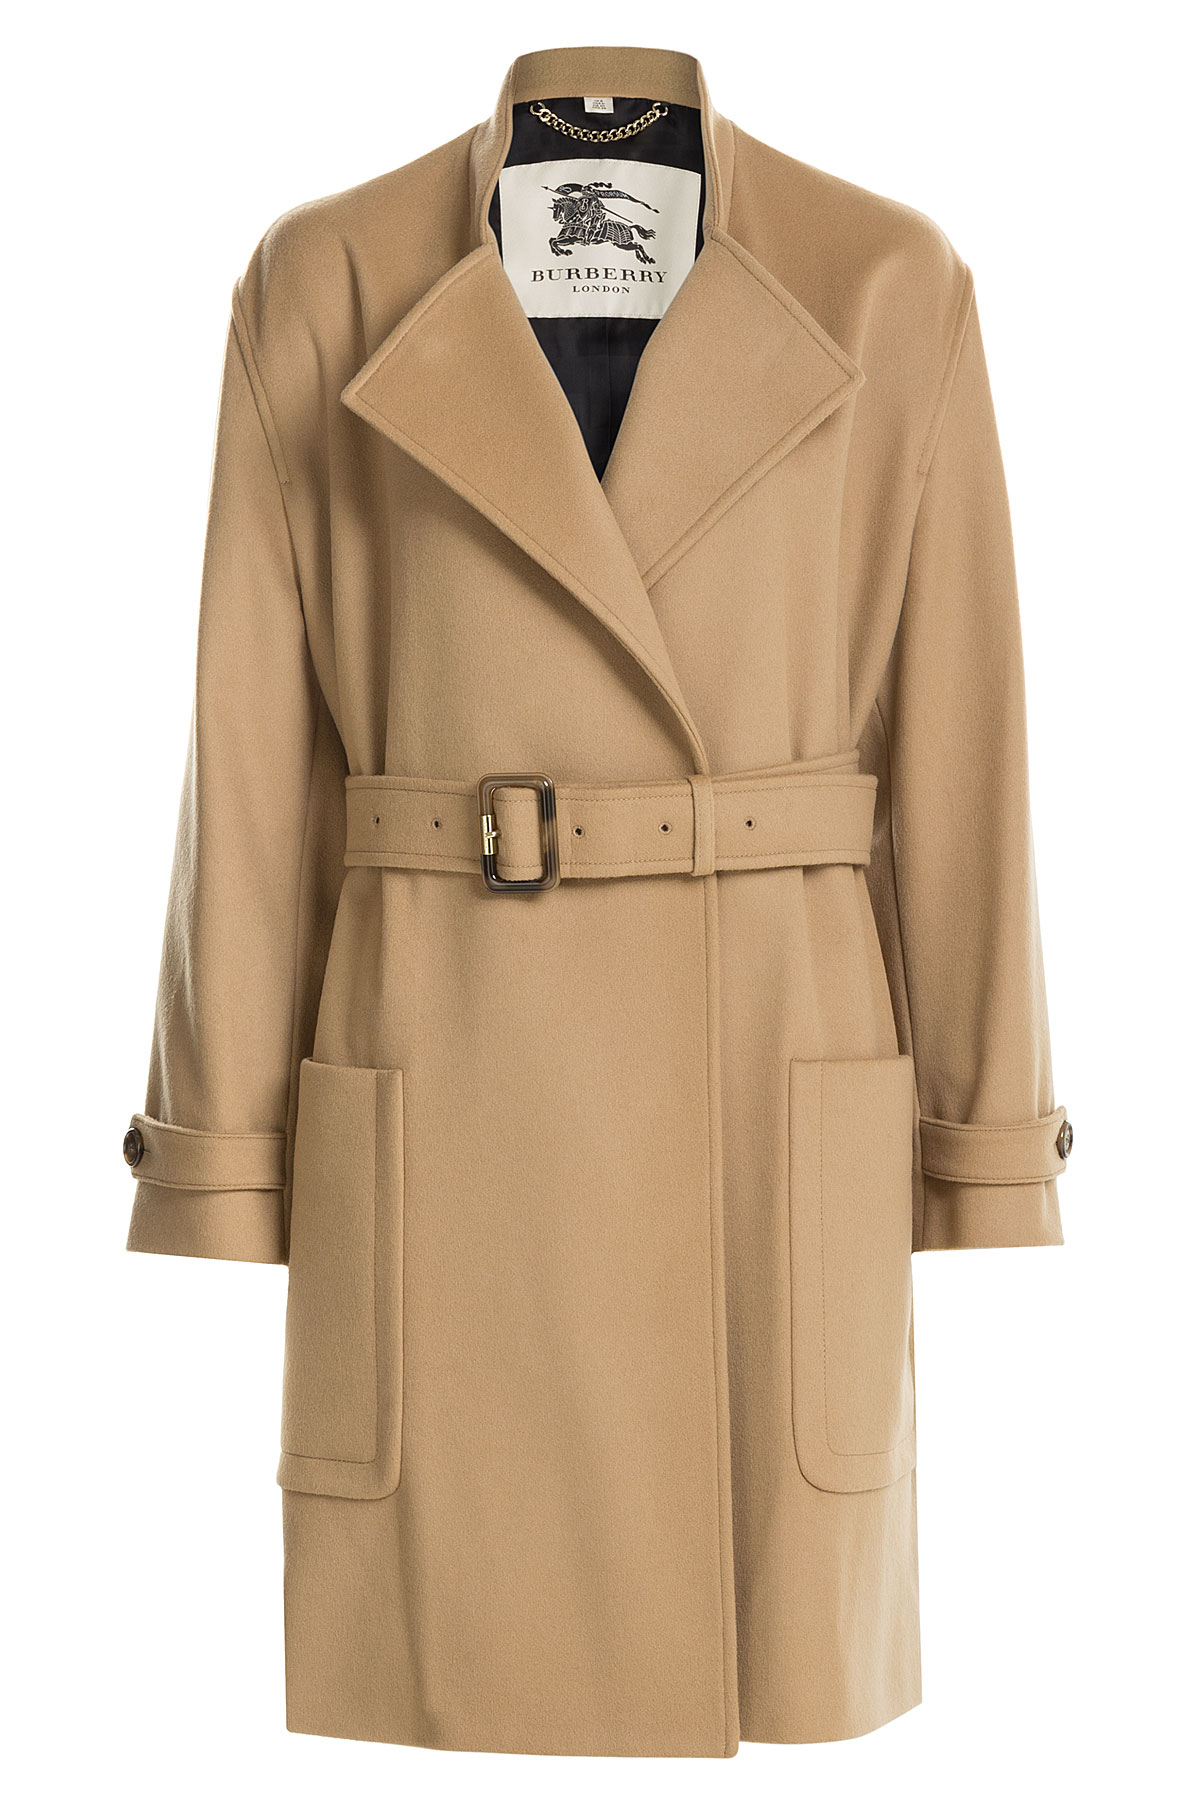 Burberry Wool-cashmere Trench Coat - Camel in Natural | Lyst